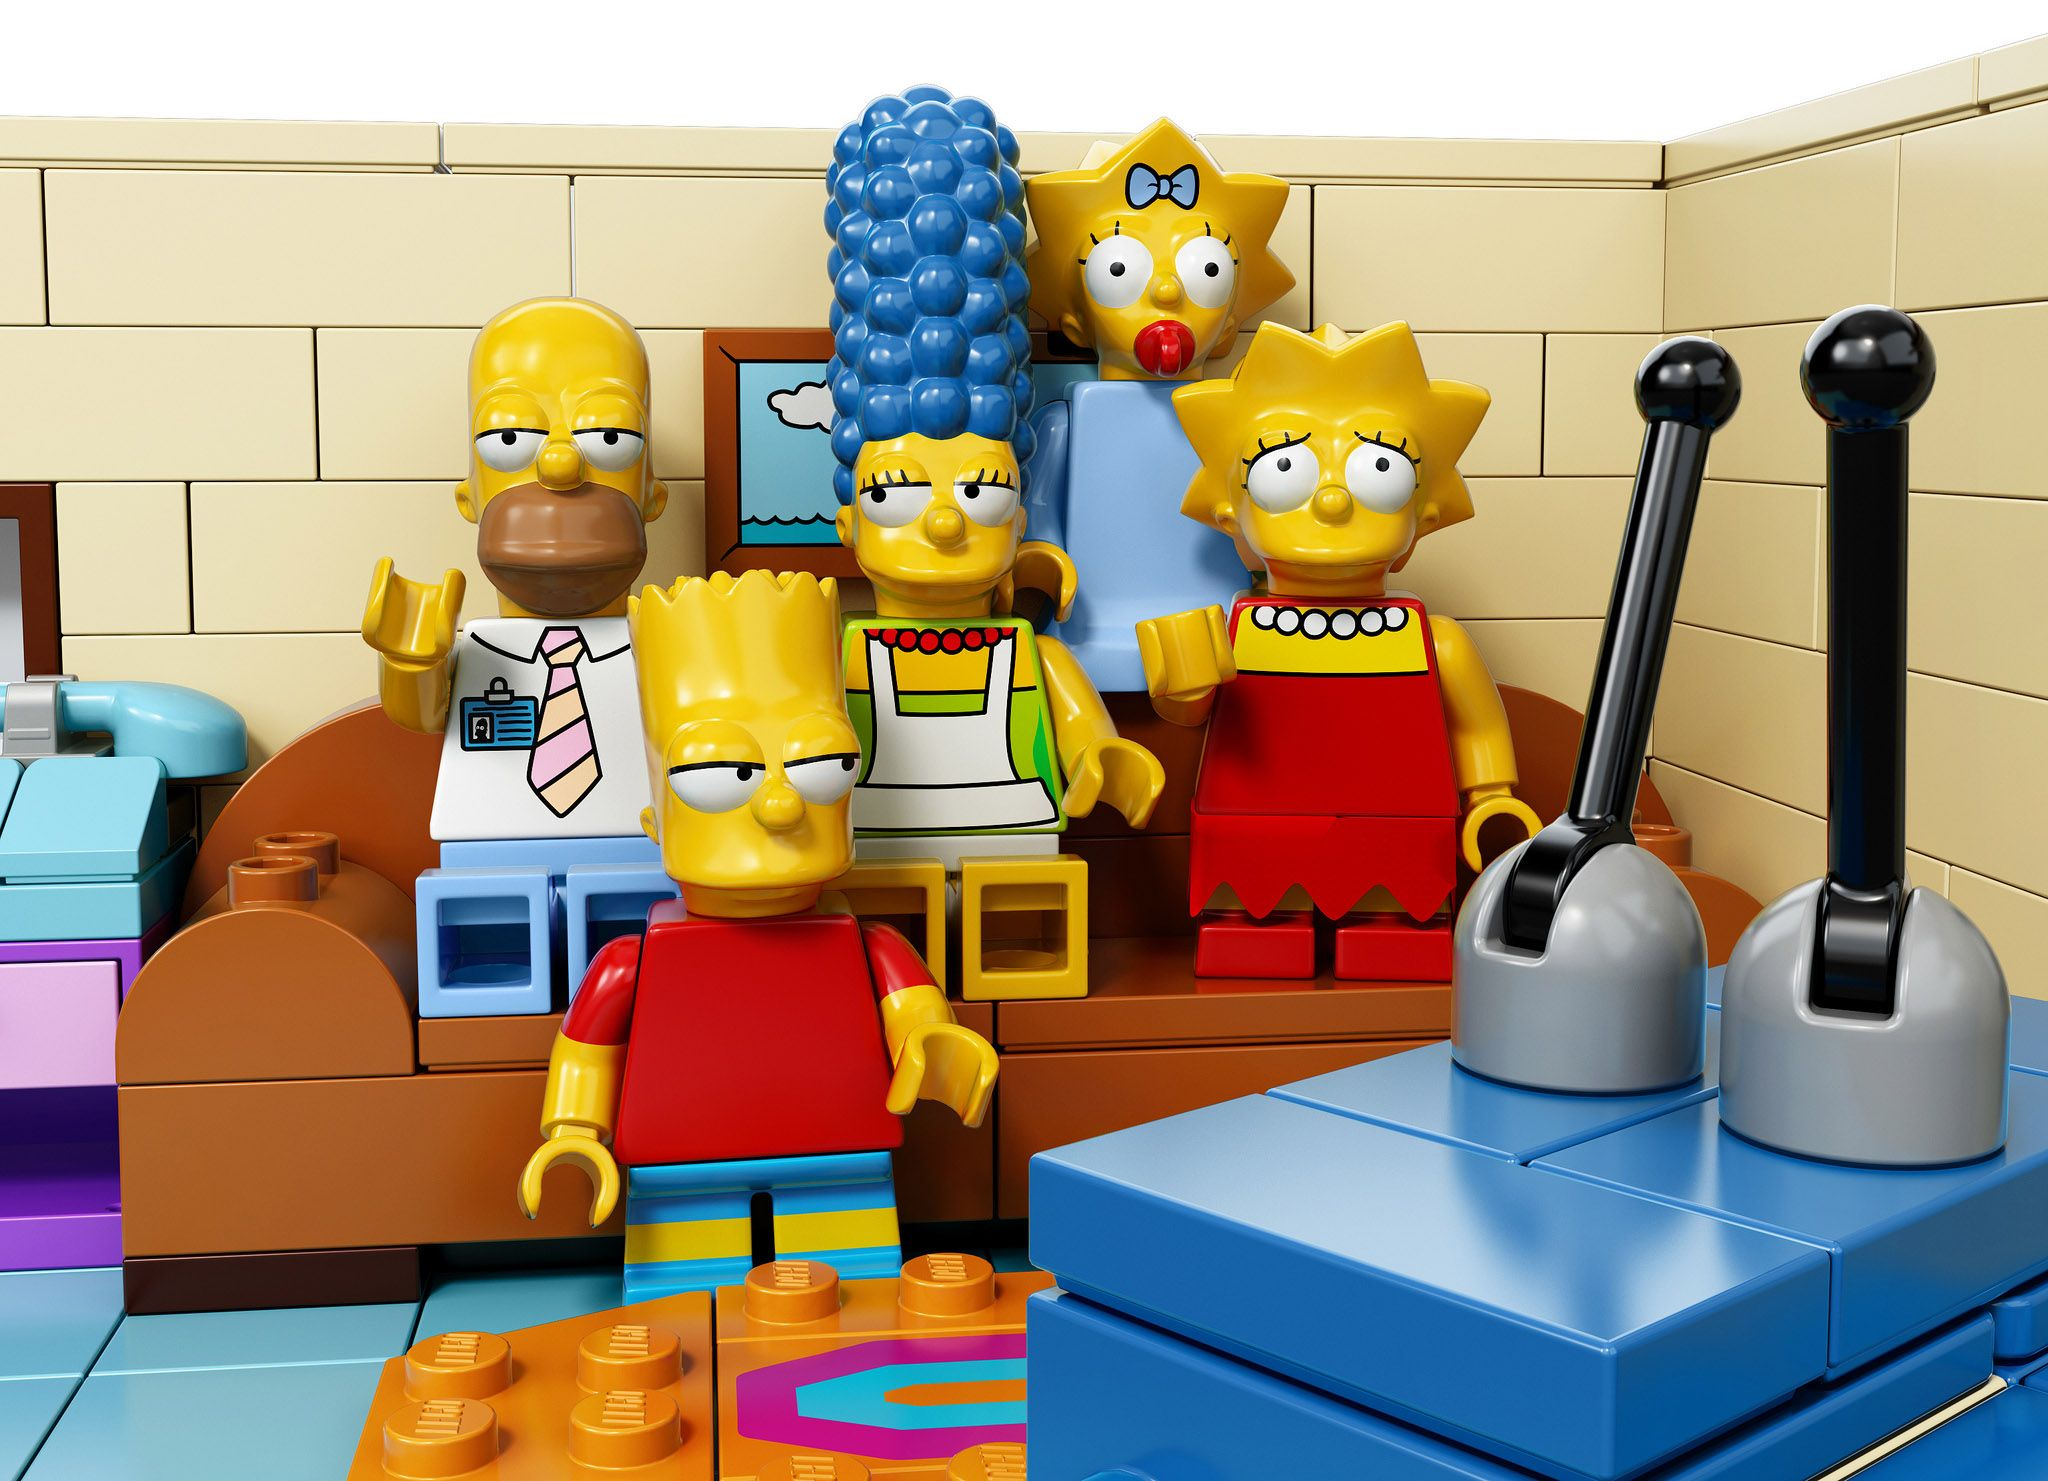 Official 'The Simpsons' LEGO Set :)  Yay! I smiled when I saw these.